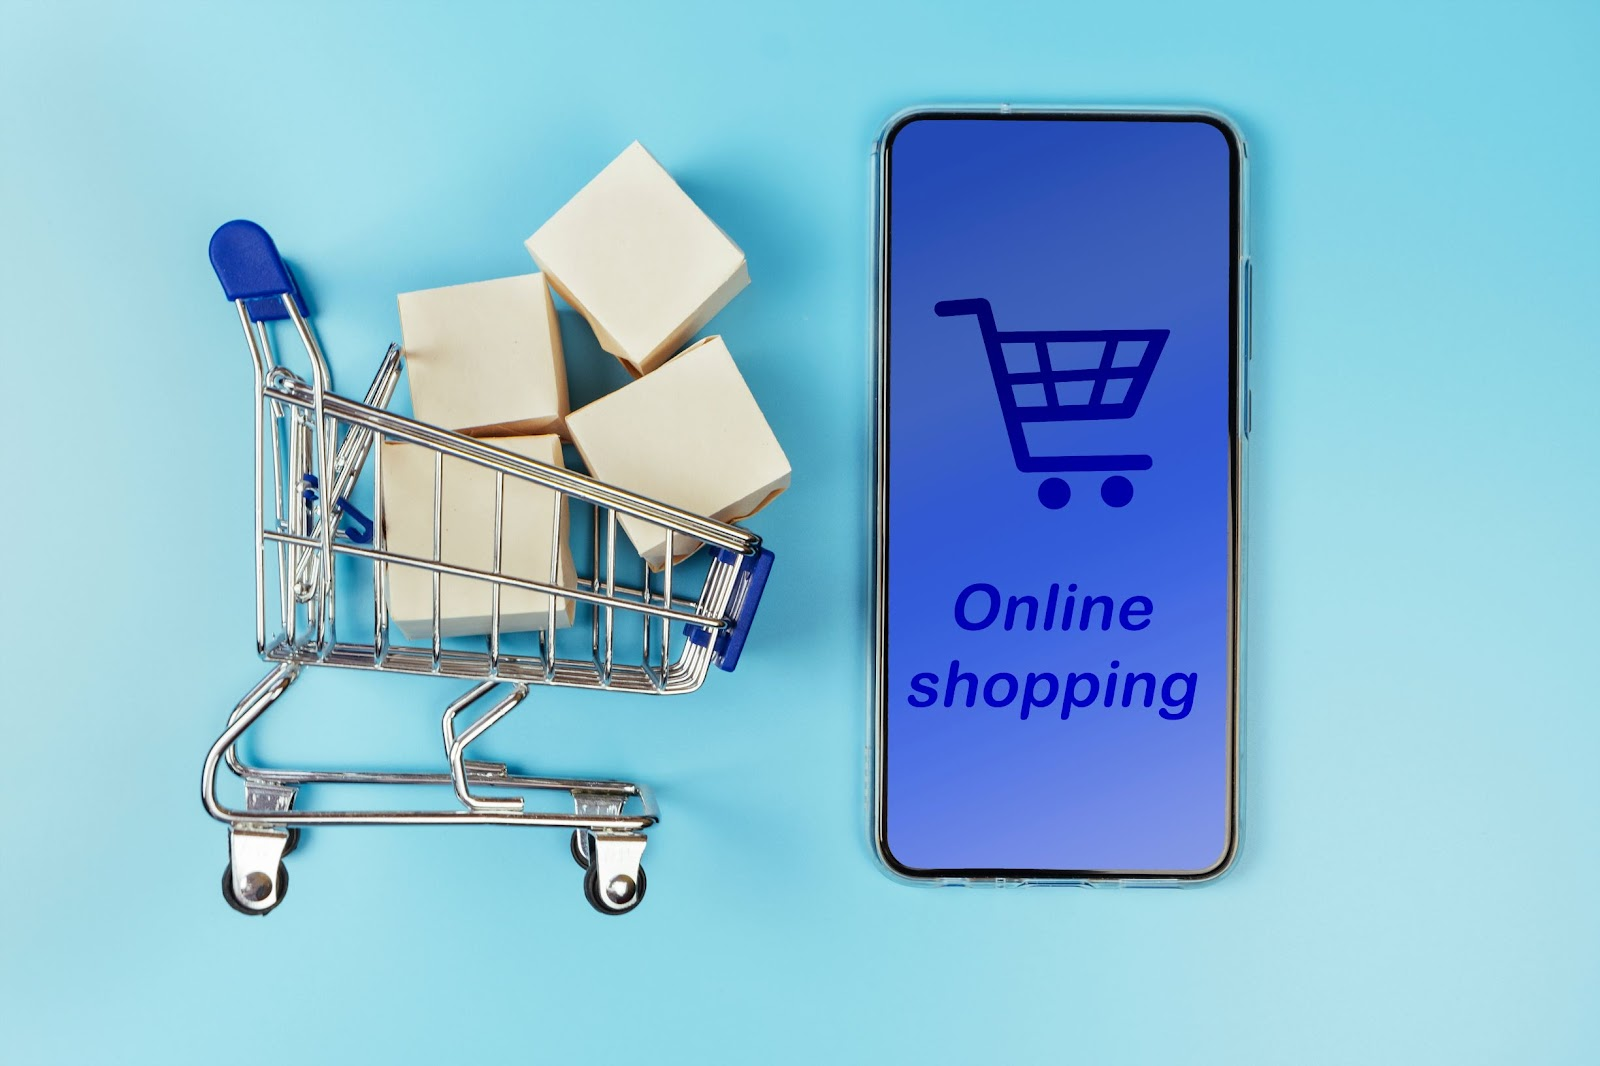 tiny shopping cart next to mobile phone showing e-commerce